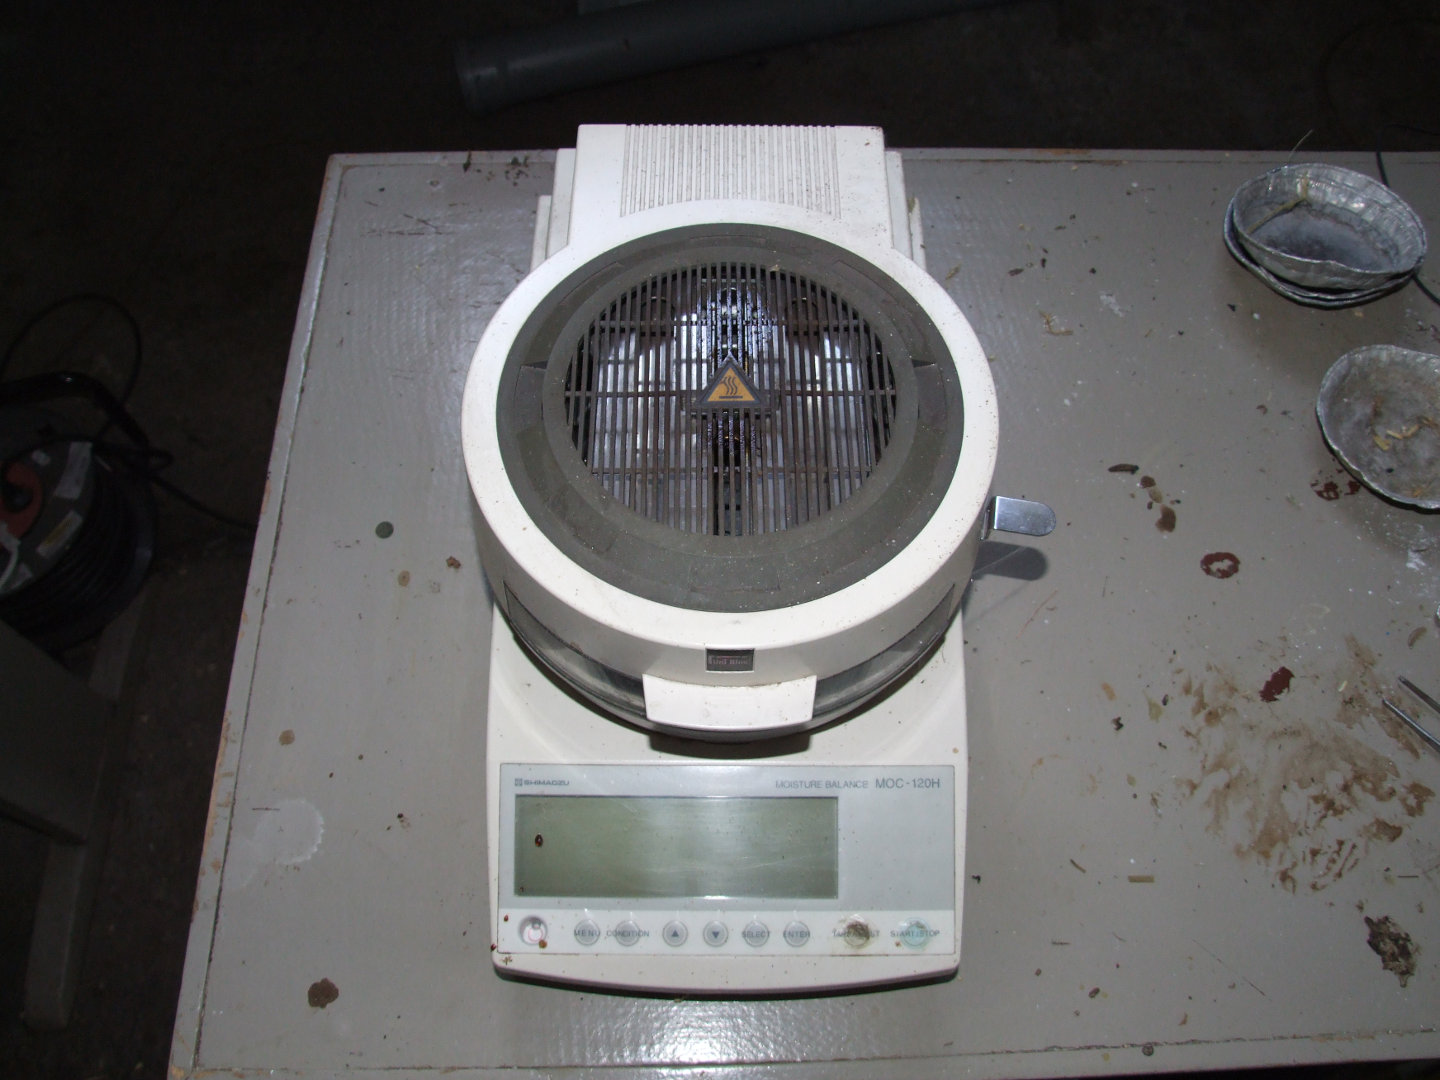 Automatic dryer scales